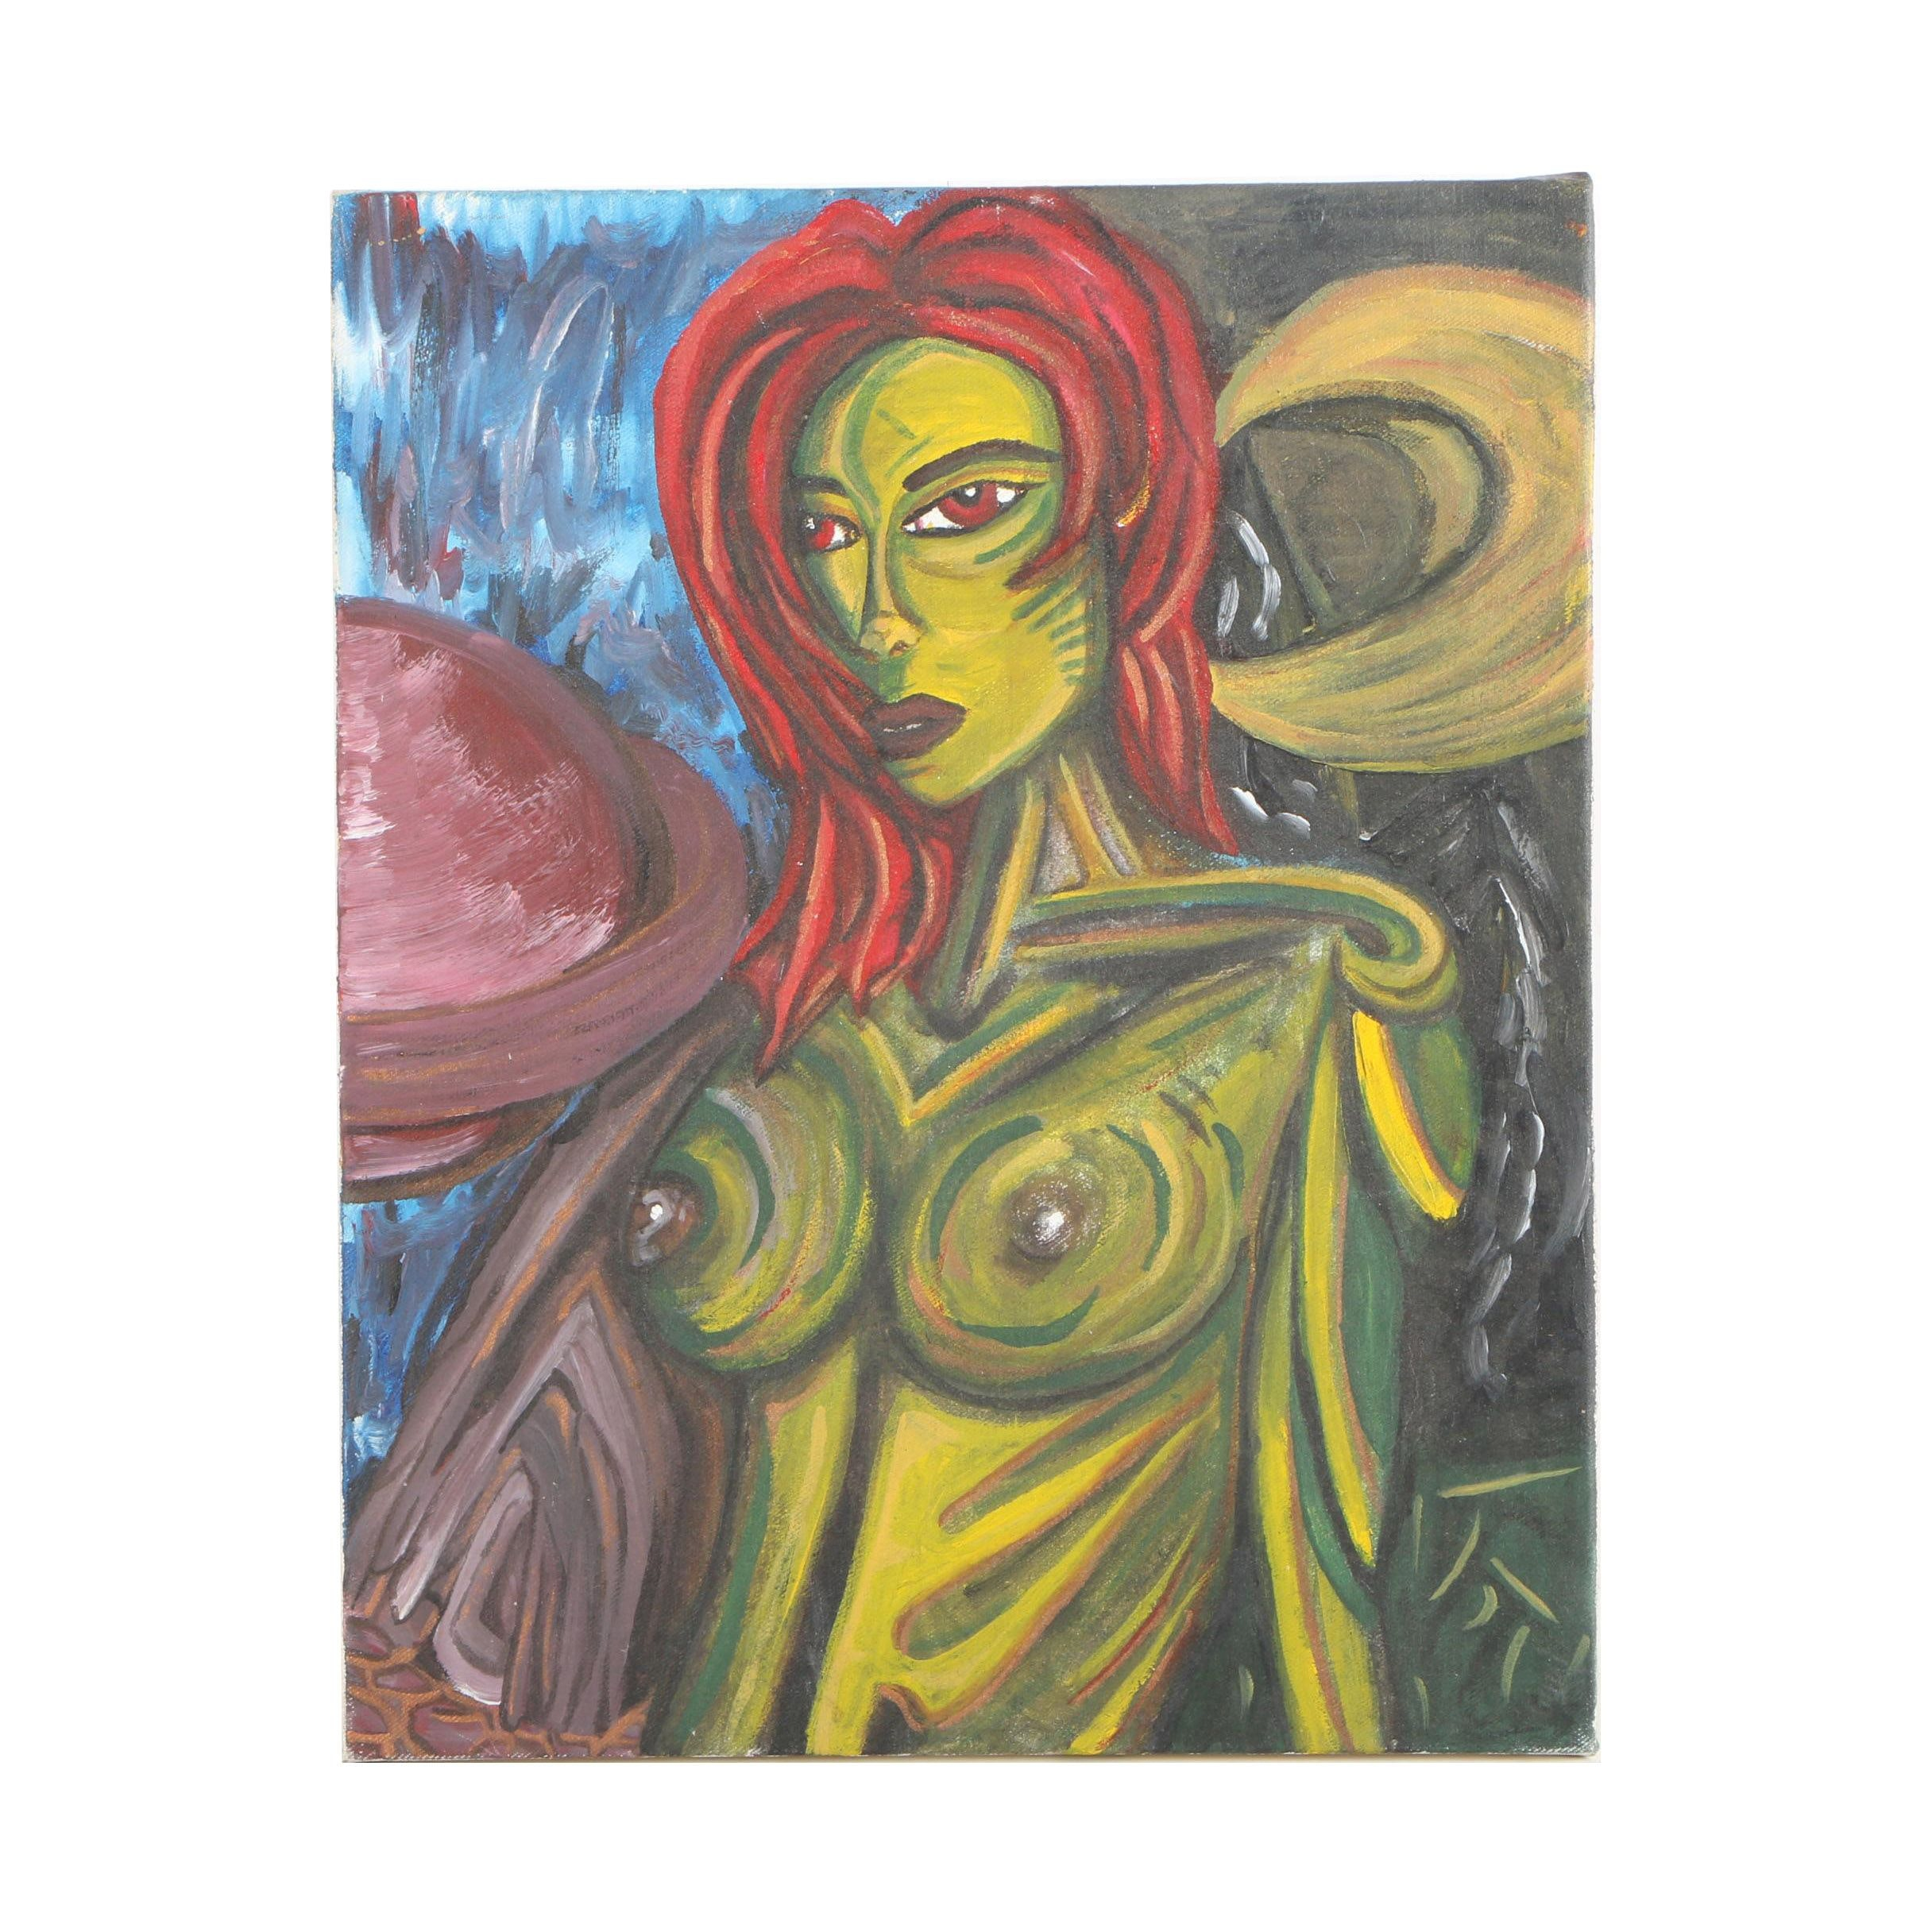 Oil Painting of an Alien Woman